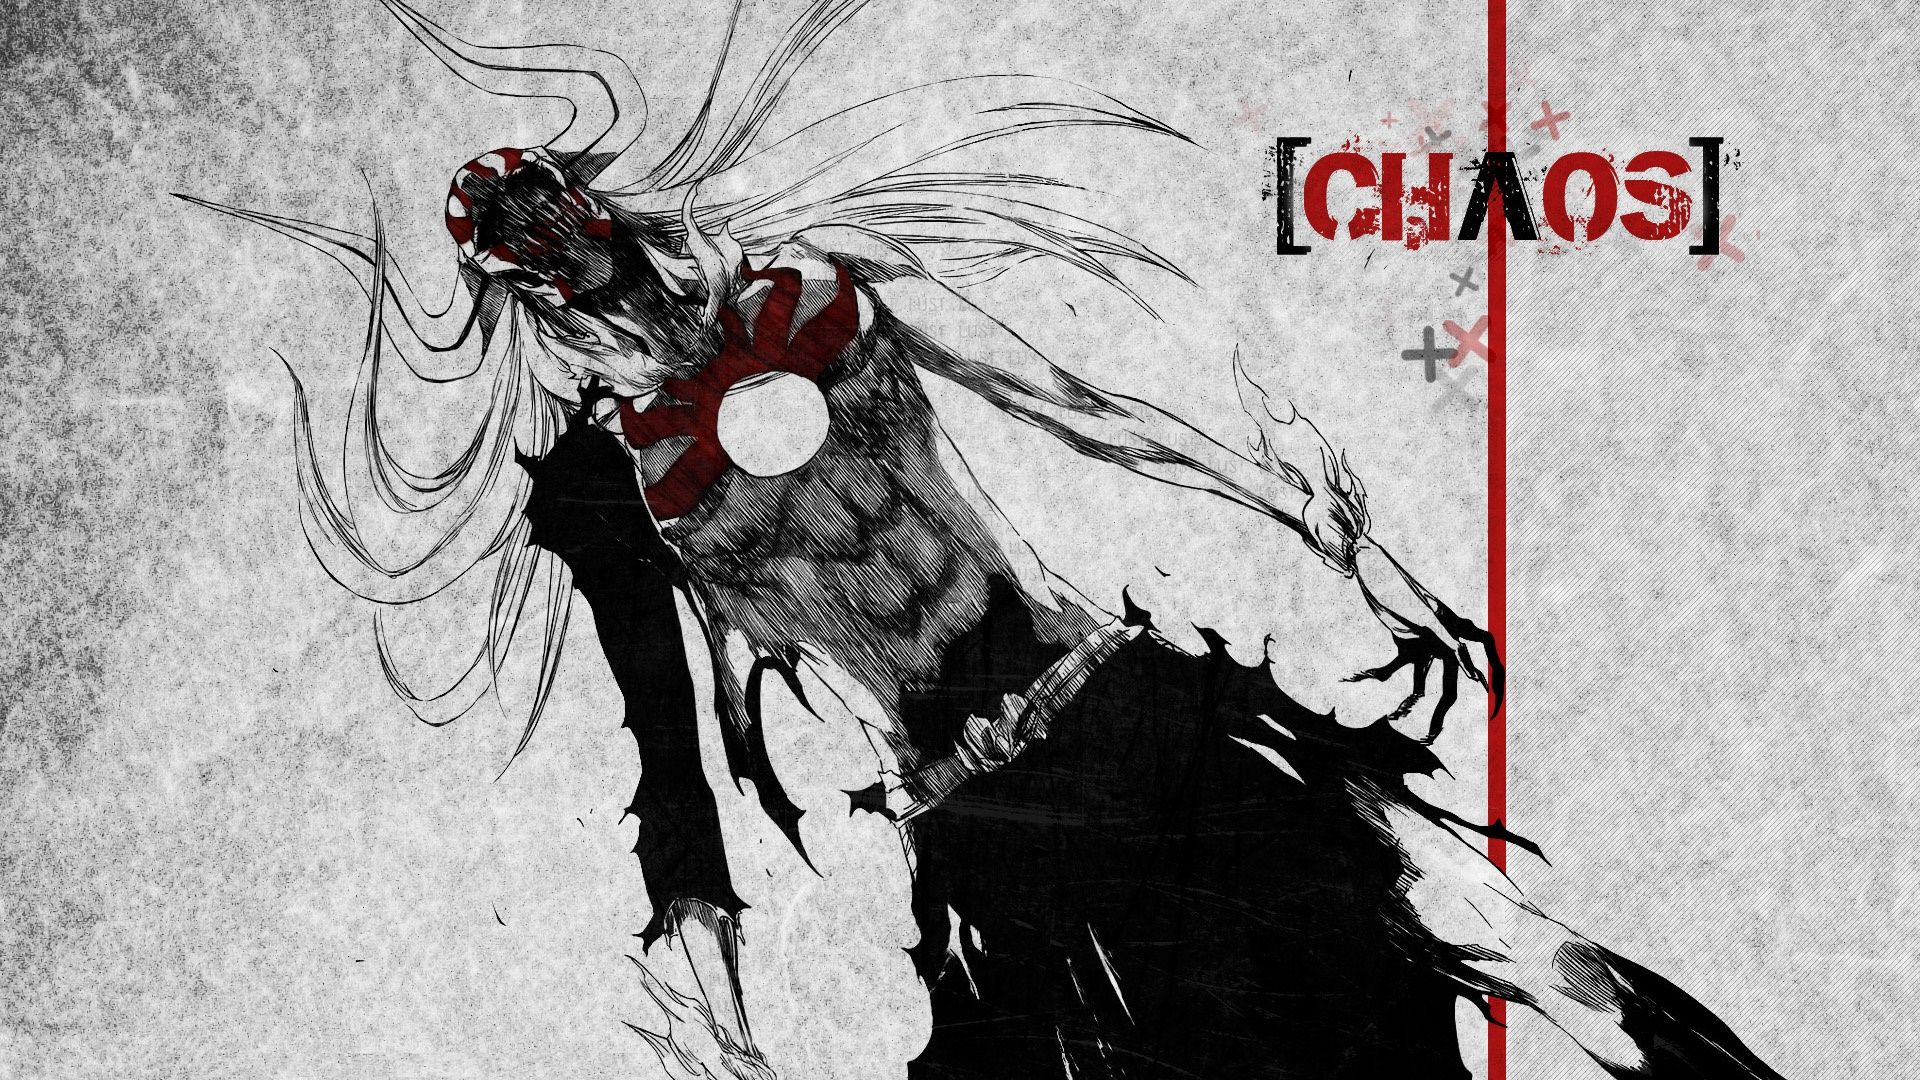 1920x1080 free anime bleach wallpapers hd hd wallpapers apple tablet amazing ...